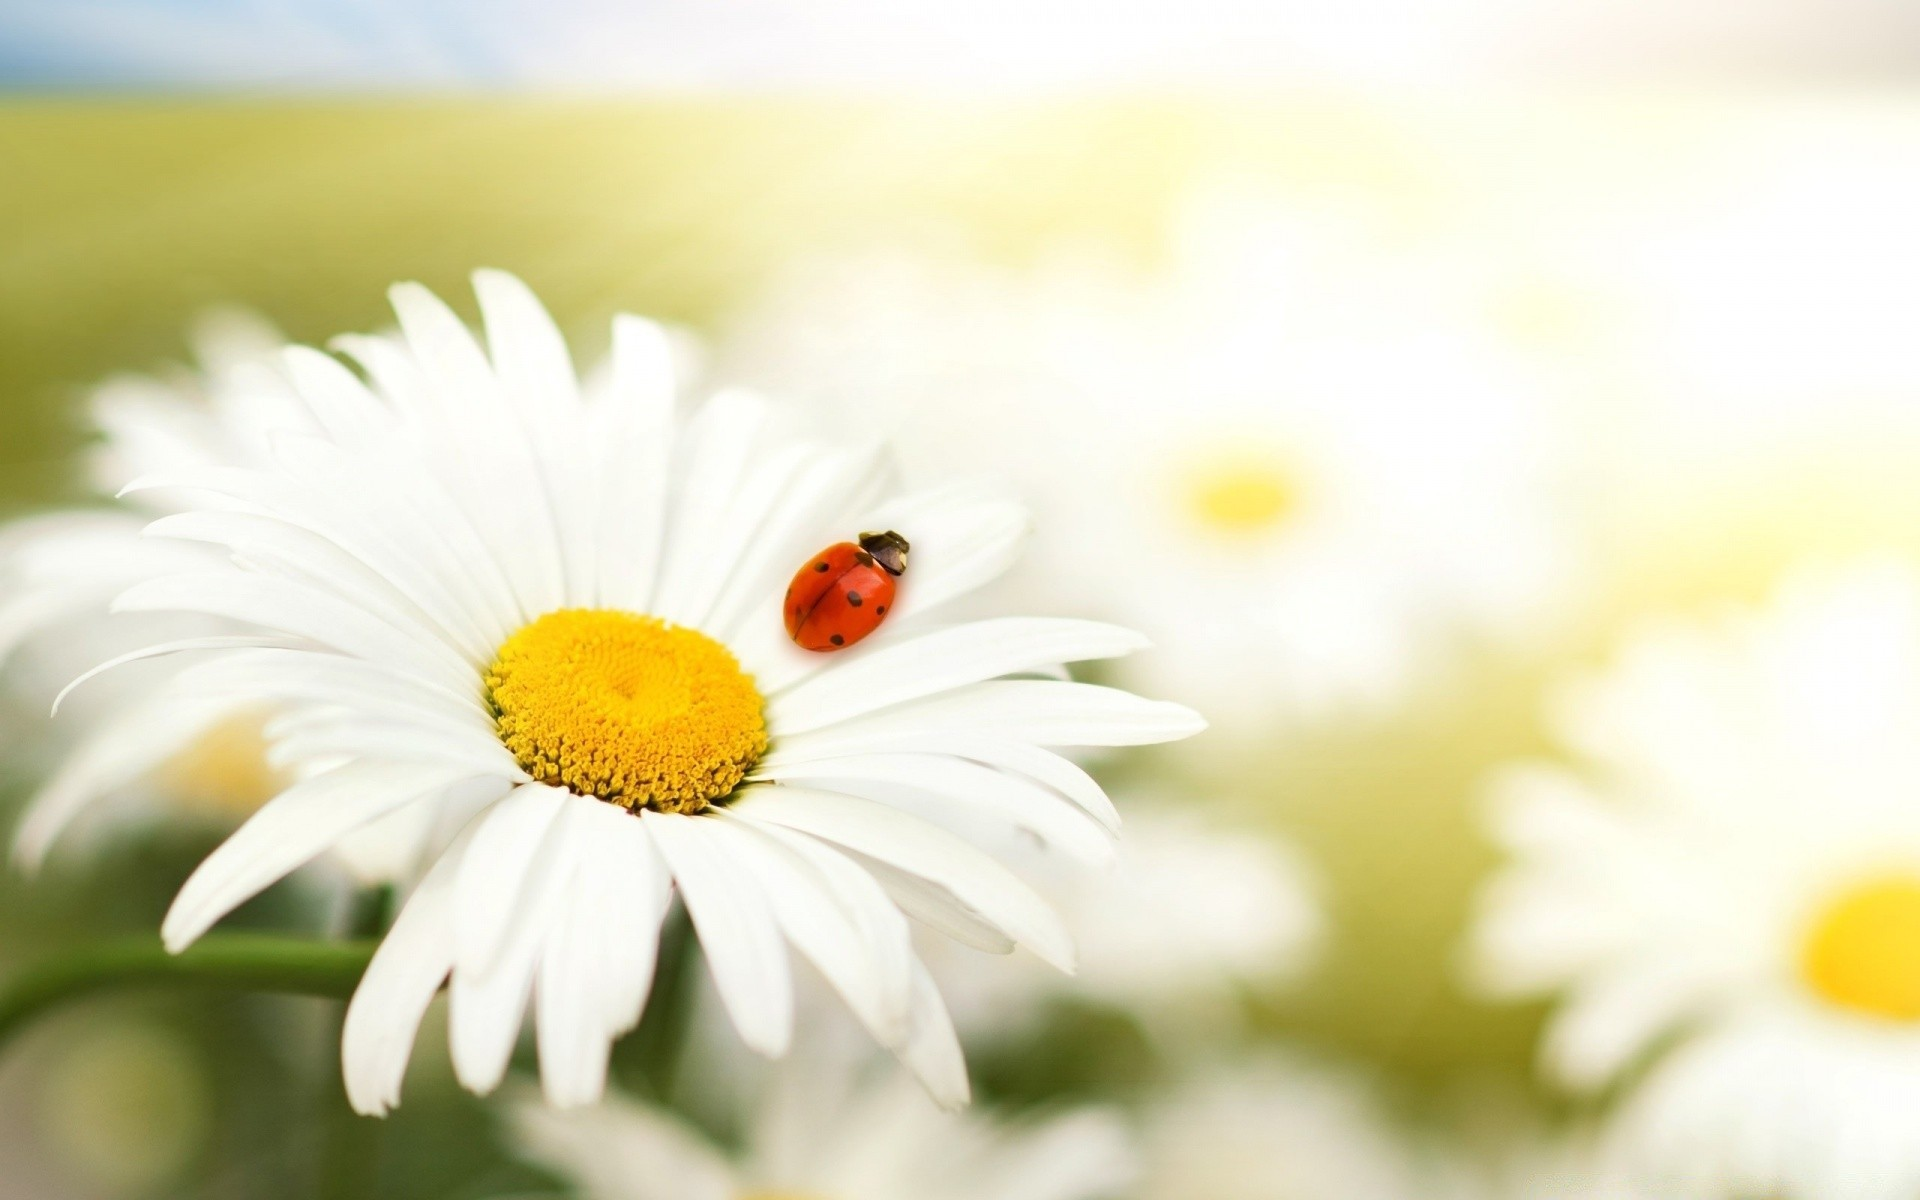 ladybug on a daisy. iphone wallpapers for free.